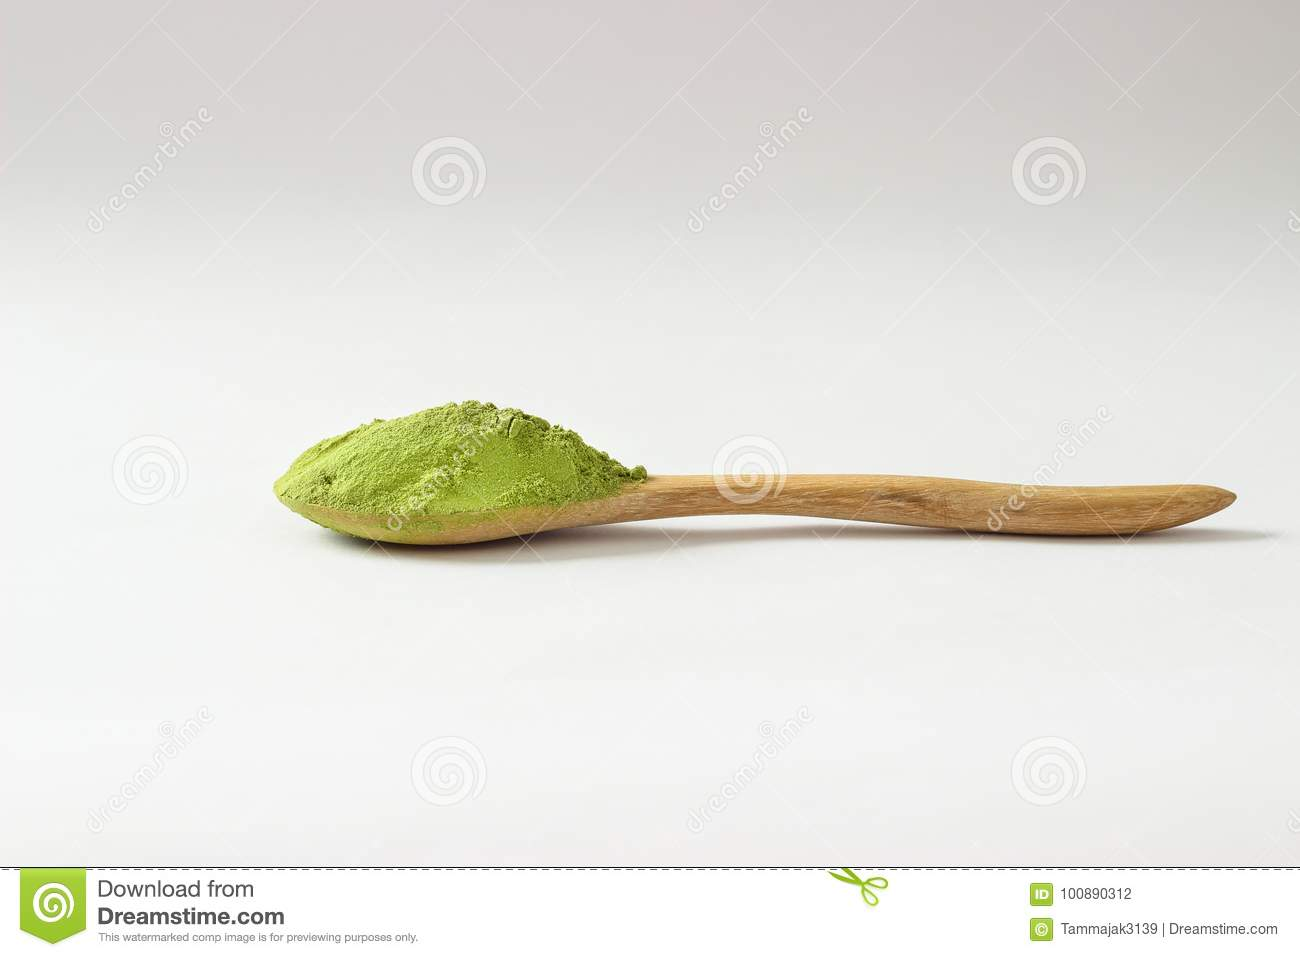 Closed Up Isolate Heap Of Extract Green Tea Powder In Wooden